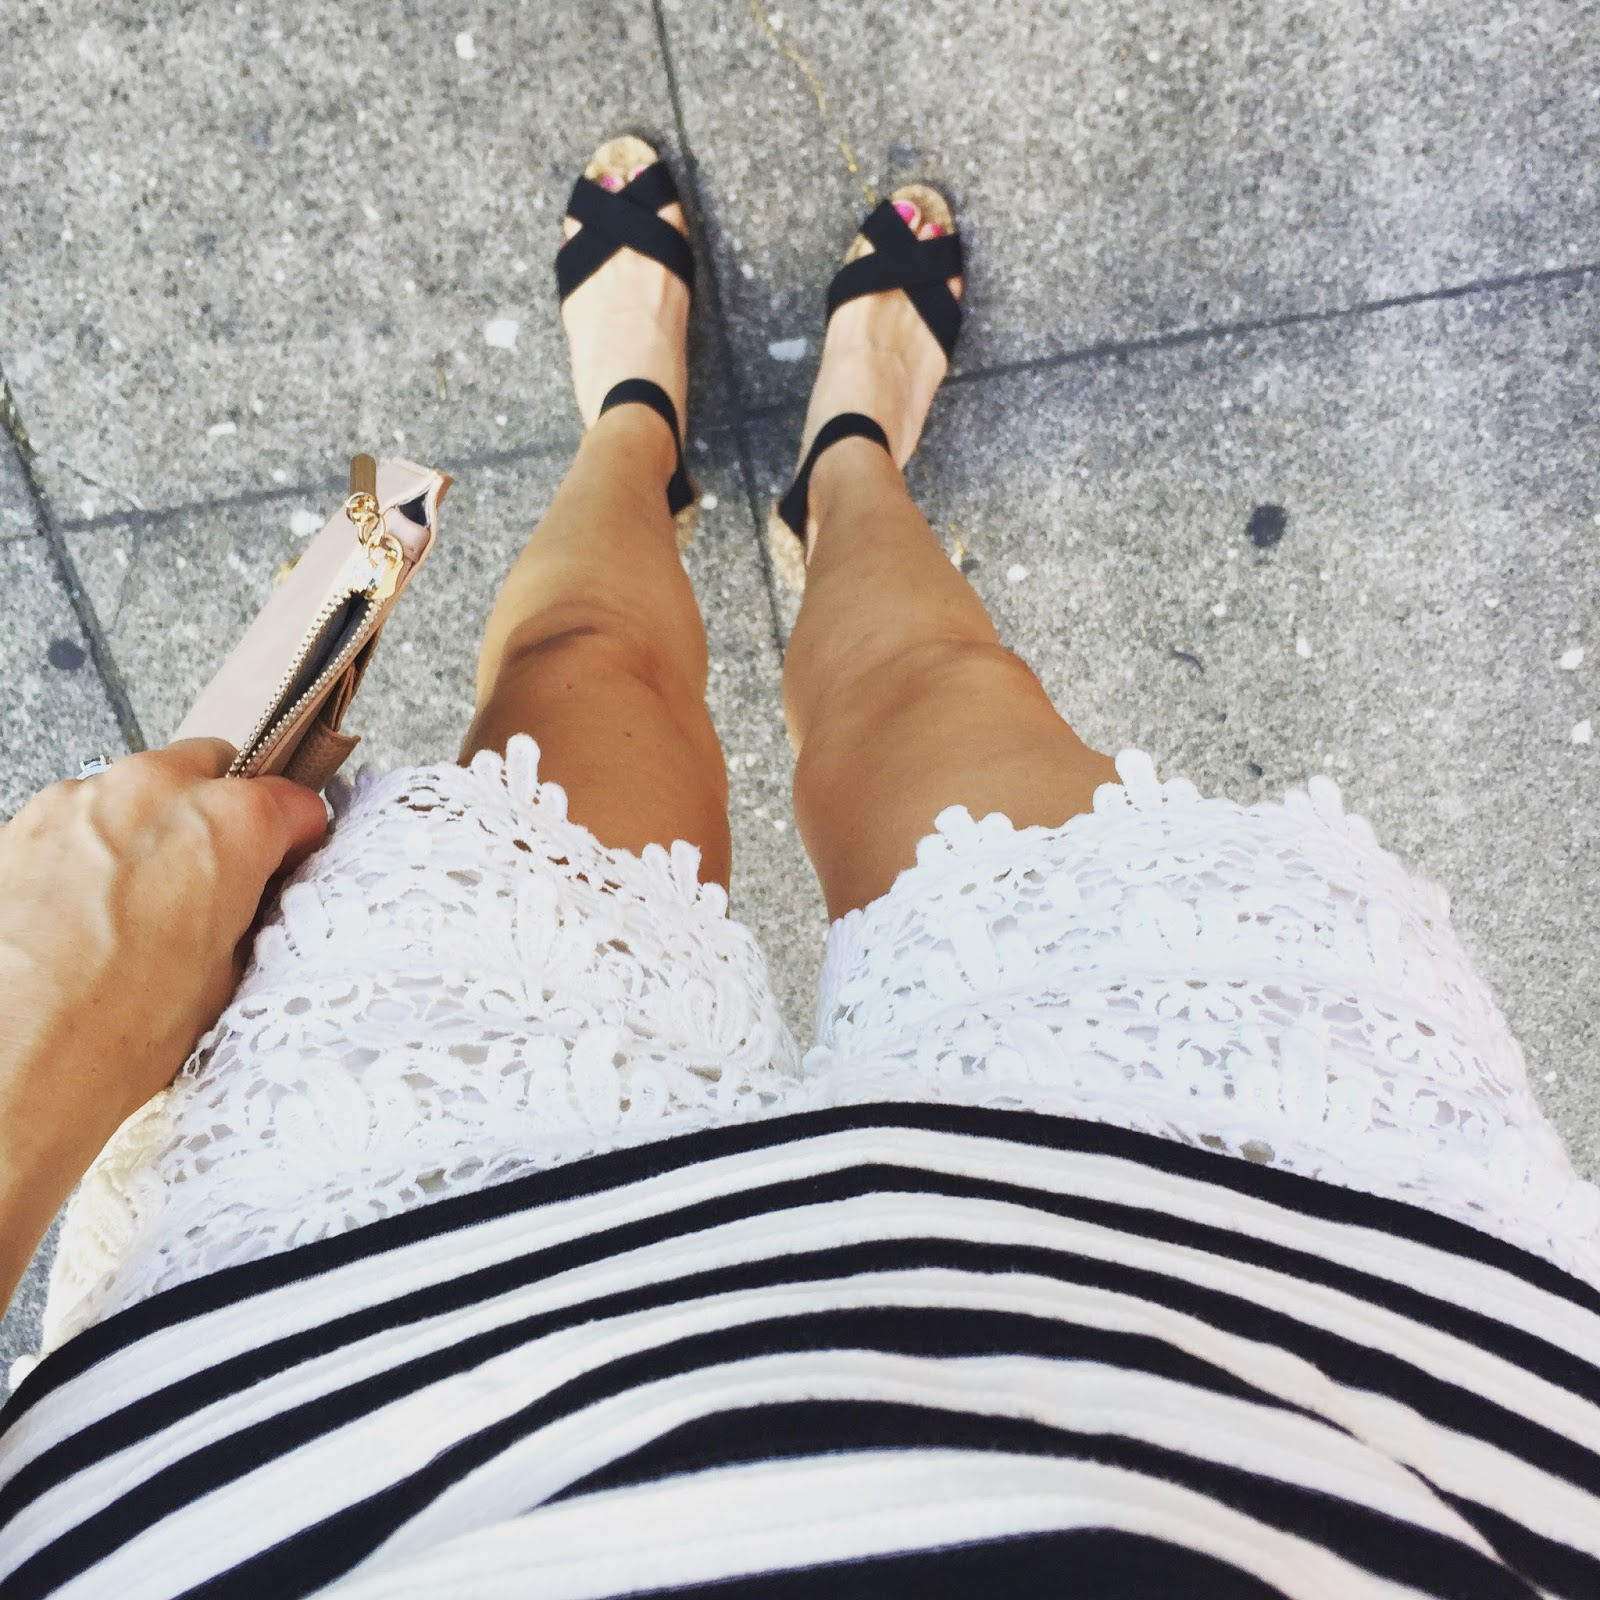 20a710846c510 I paired it with my Joe Fresh (from JCP) shorts (similar here), Manolo  Blahnik cork wedges, the Danielle Nicole Zelie clutch that Katie blogged  about just ...